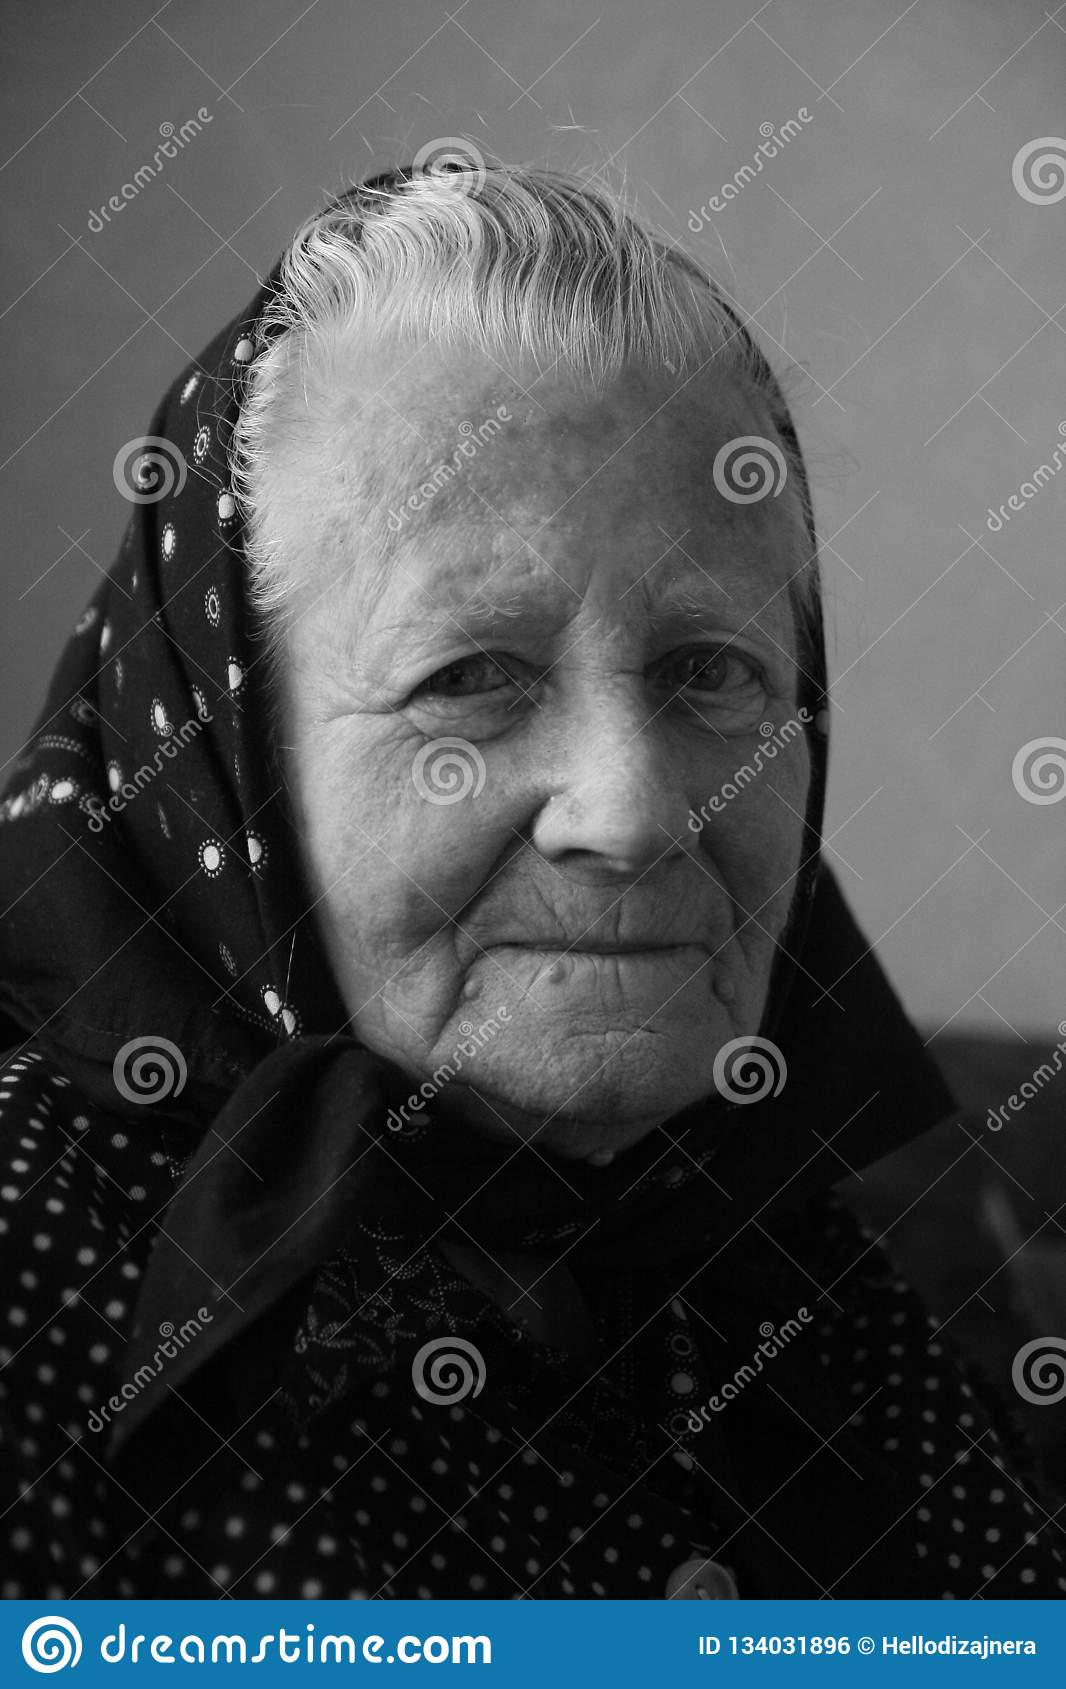 Smiling middle european grandmother old woman senior face artistic black and white portrait